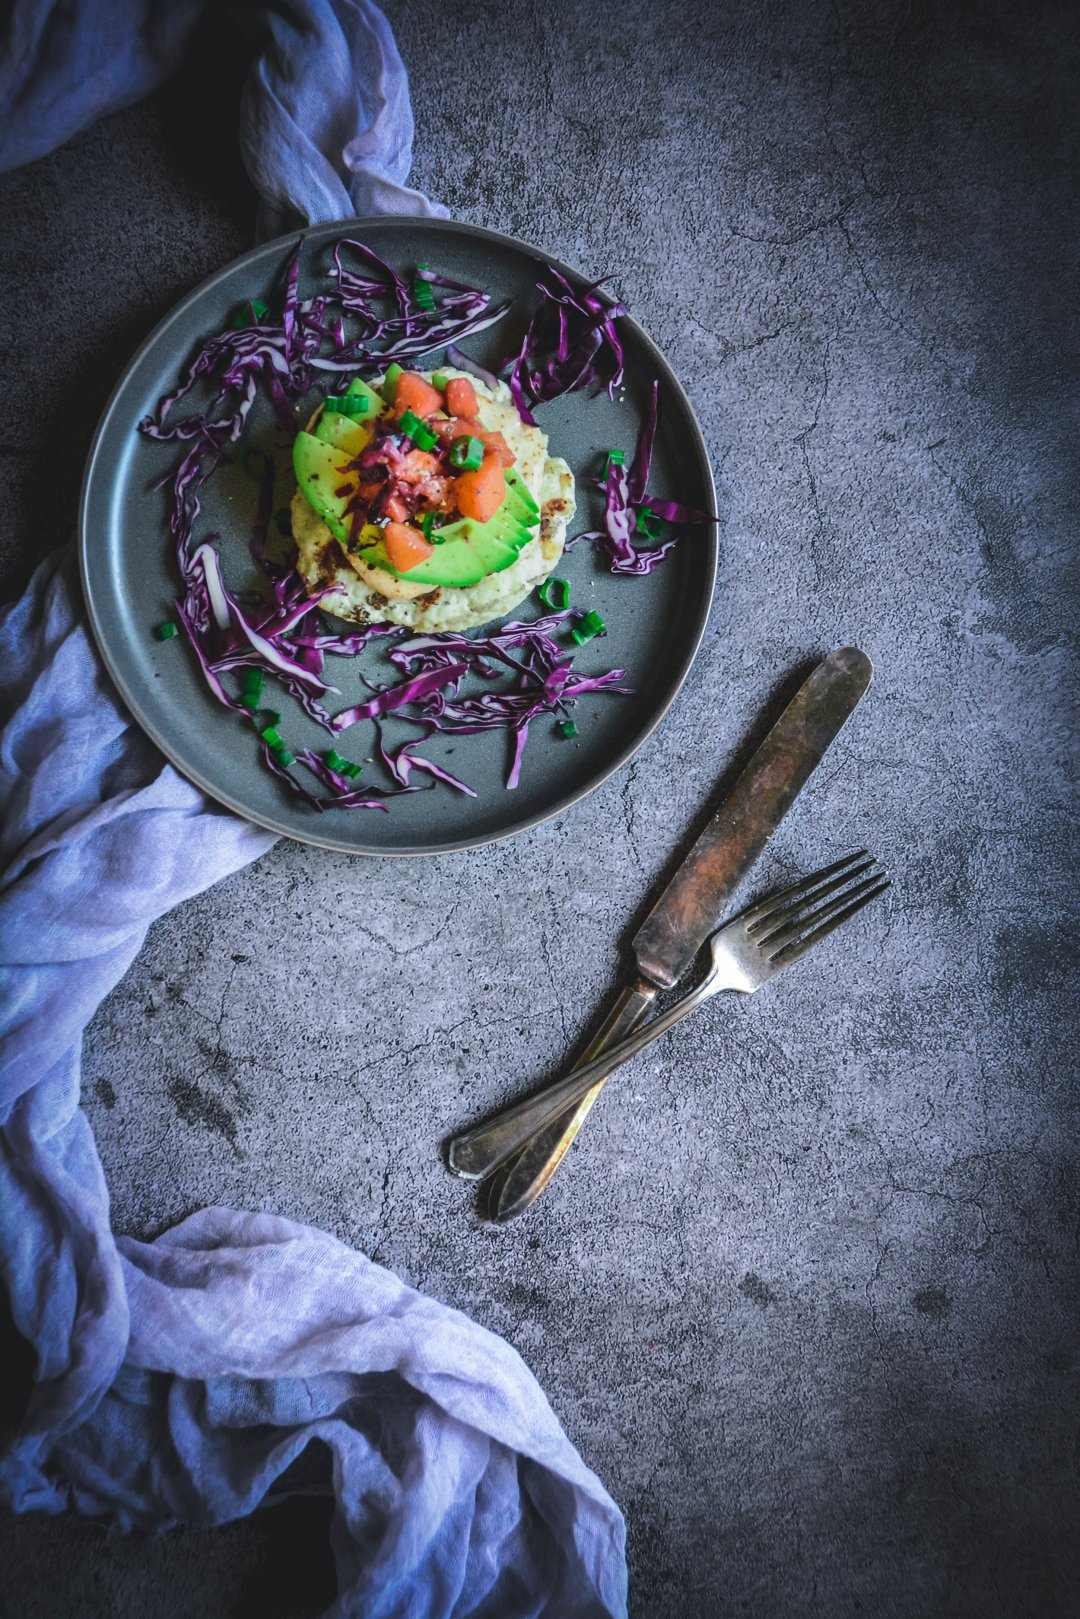 Turkey burger with peach chutney, on plate with napkin and fork and knife